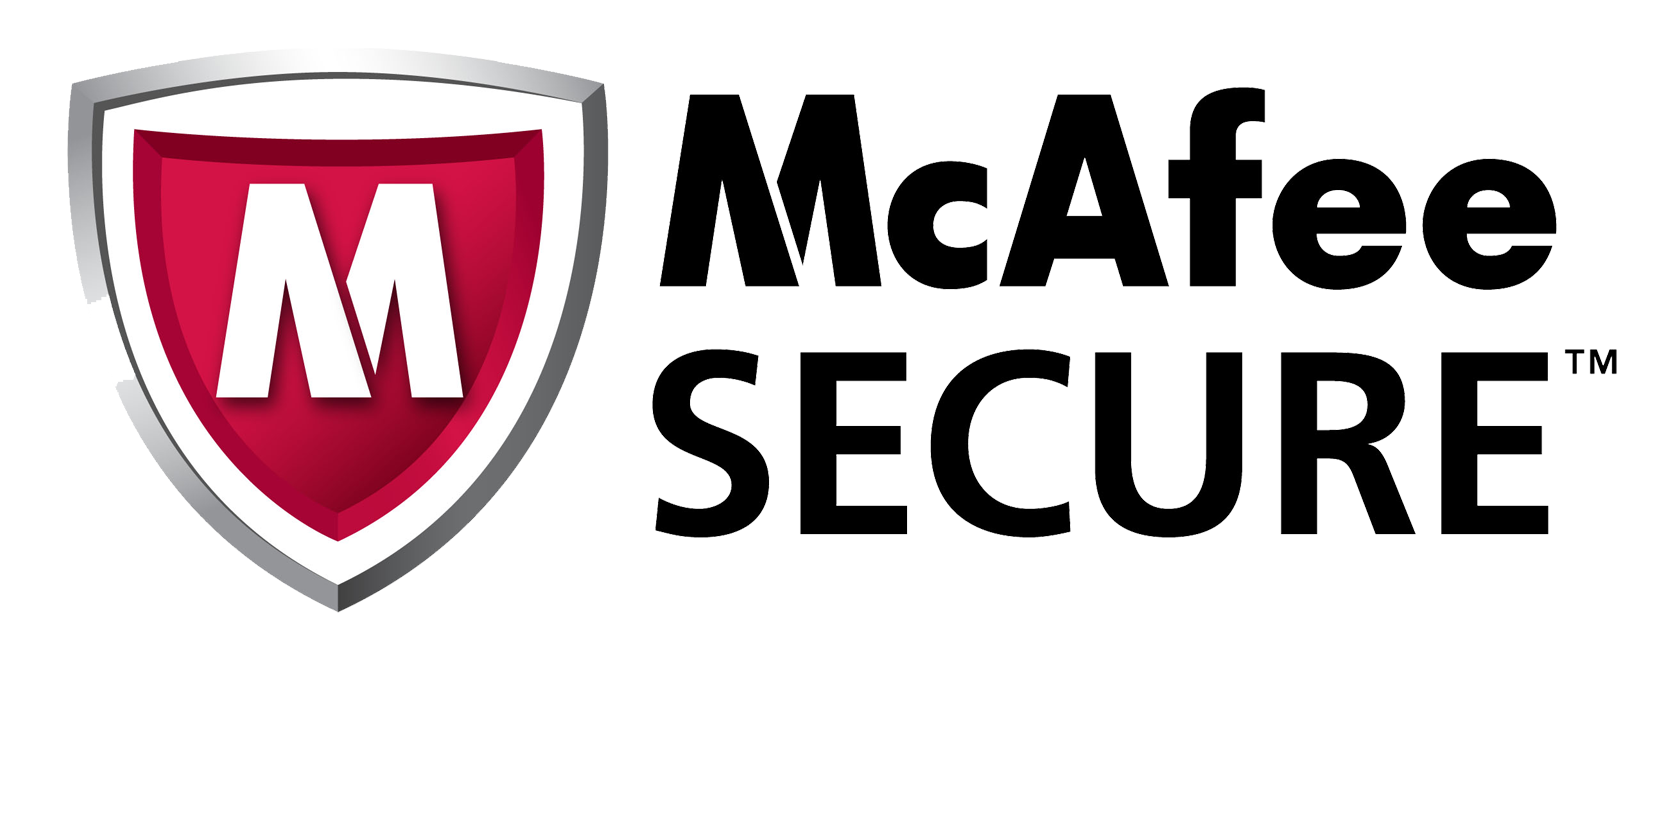 Mcafee Secured tm